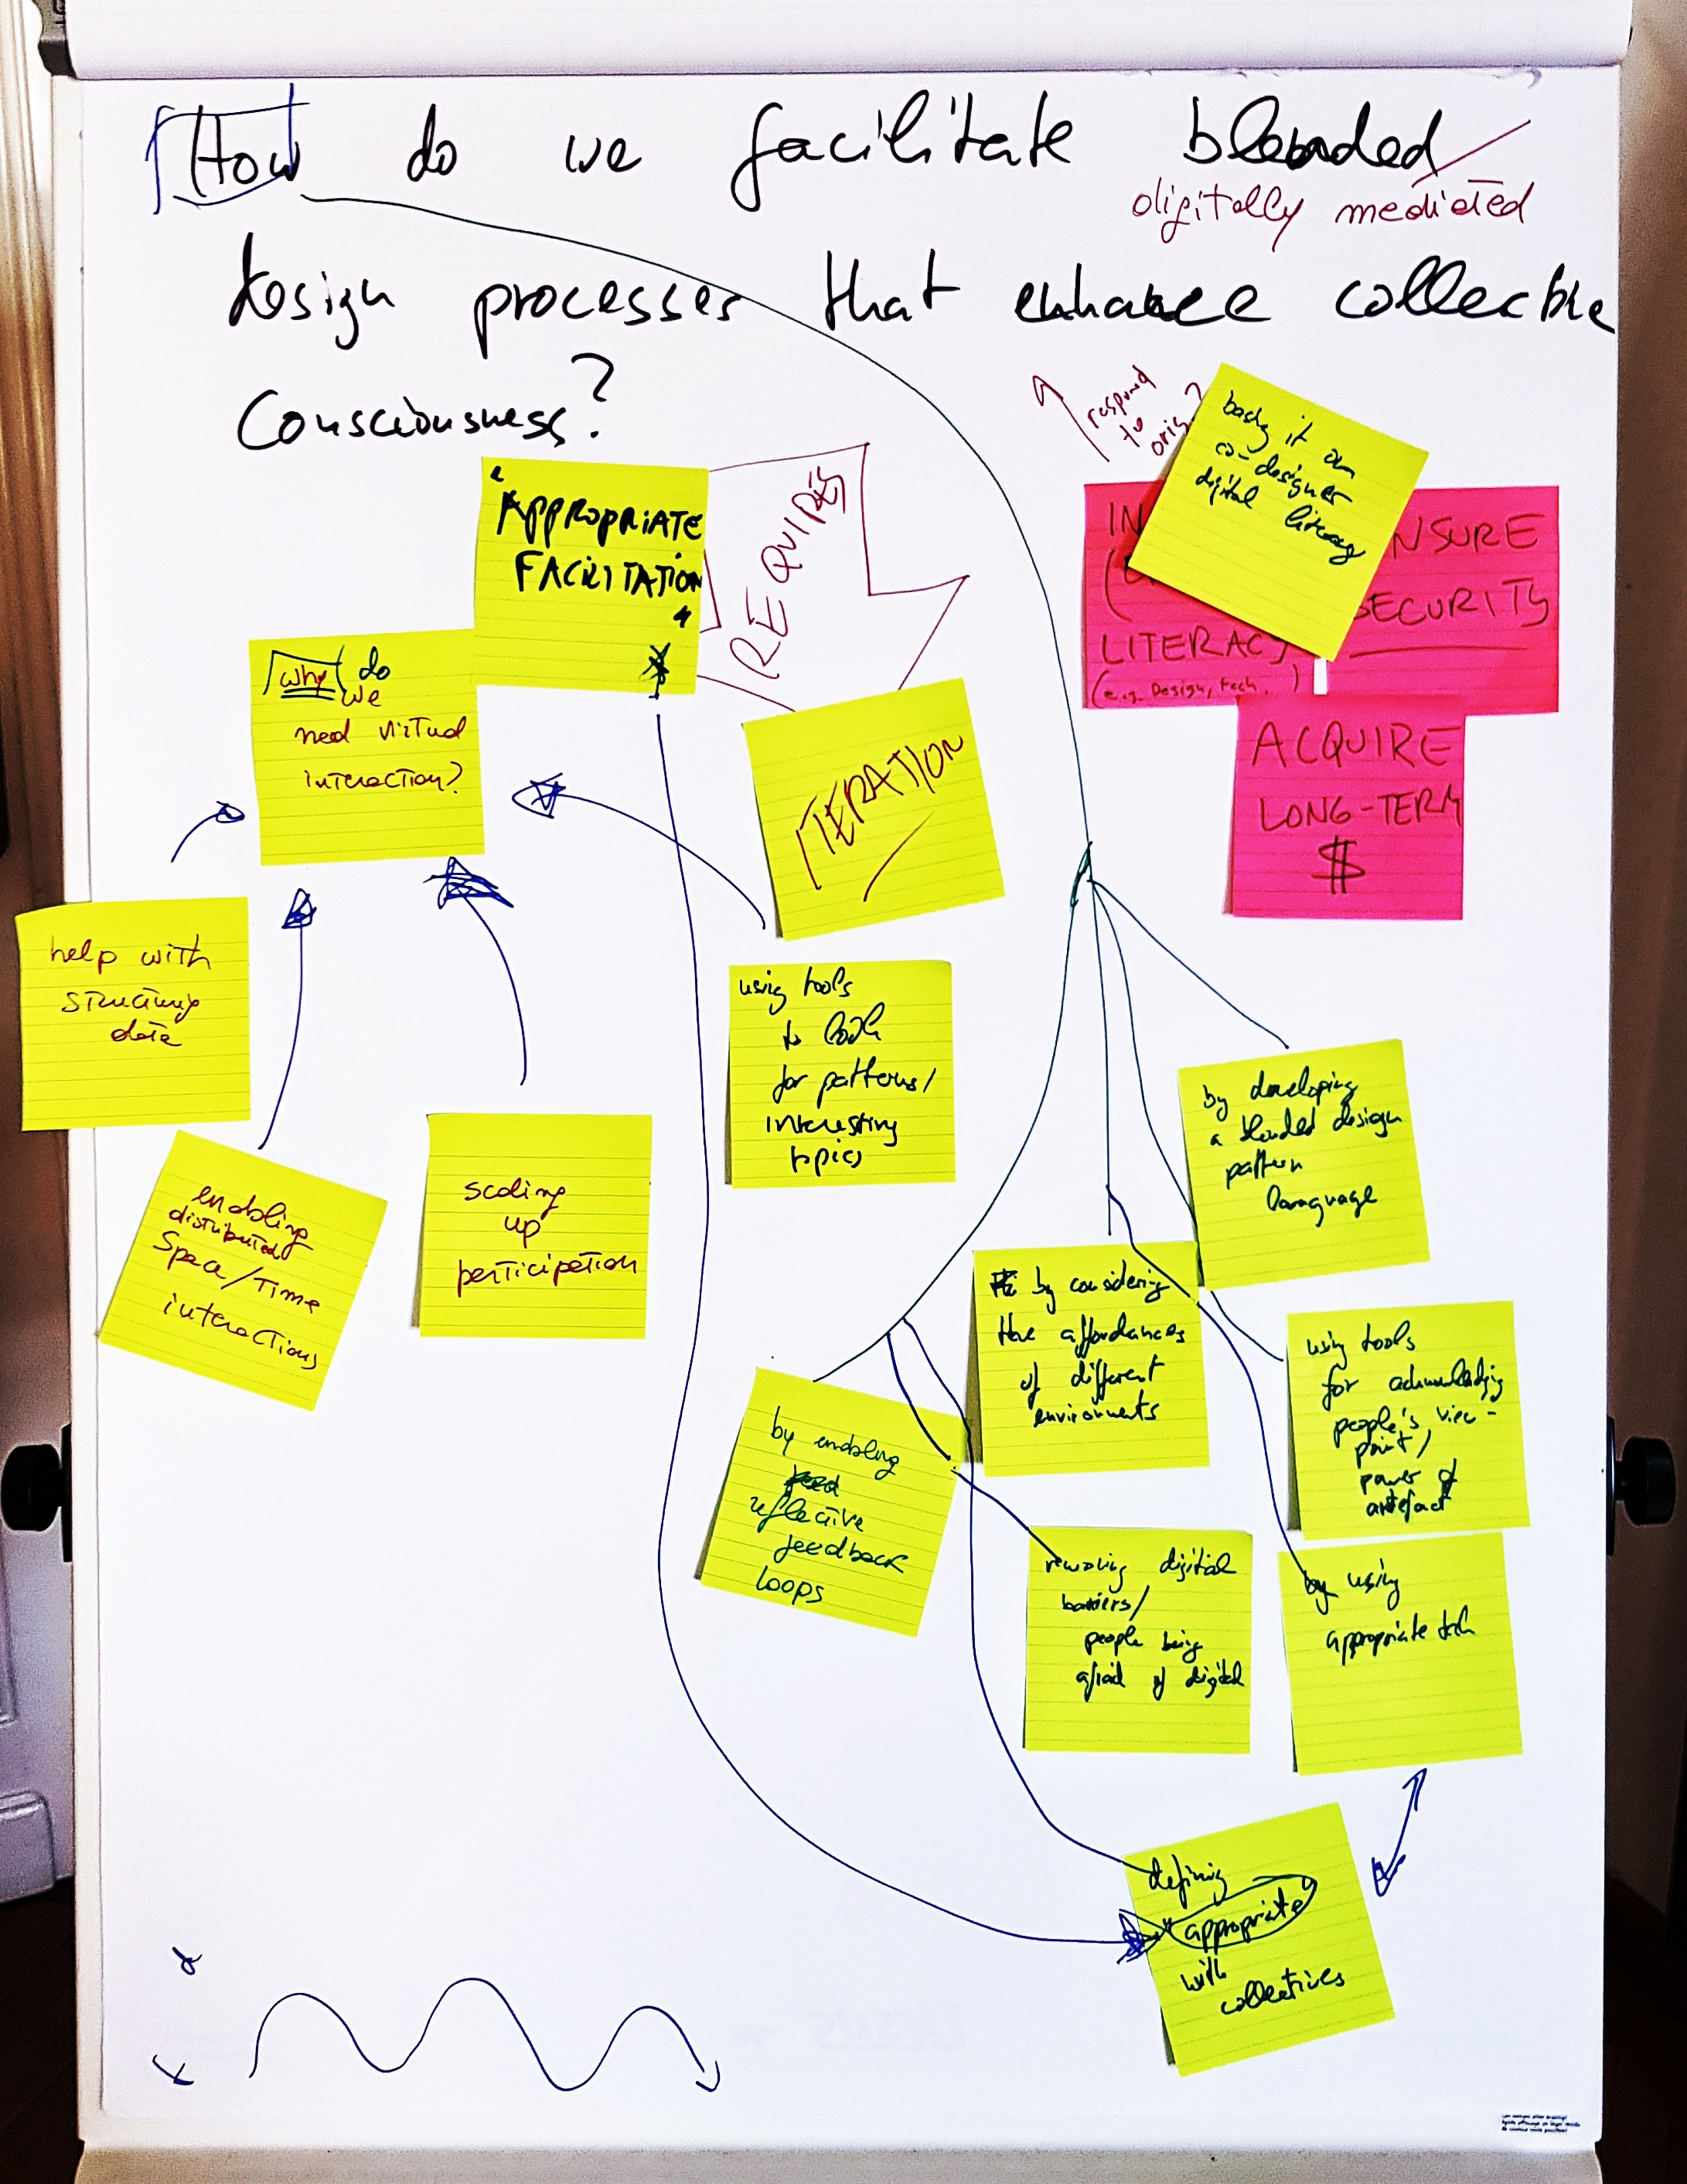 Concept mapping the design processes that enhance collective consciousness